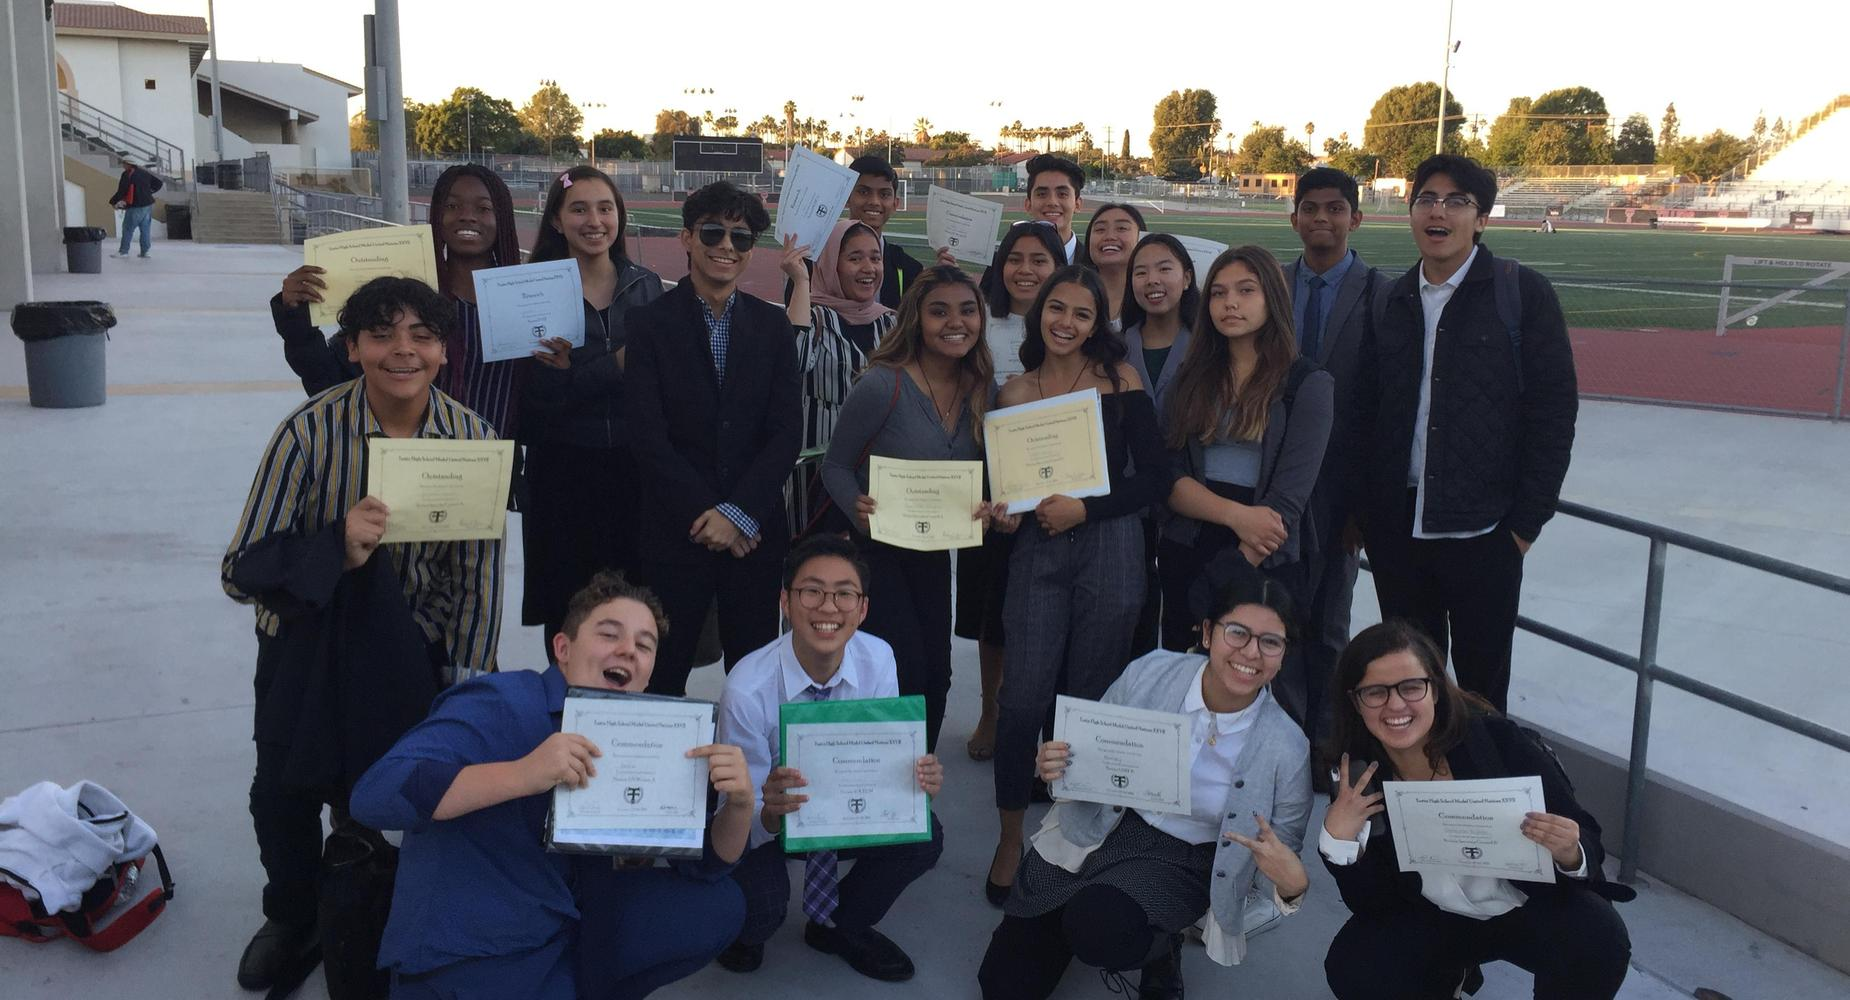 Gahr High School Students at 27th Annual Tustin High School Model United Nations Conference